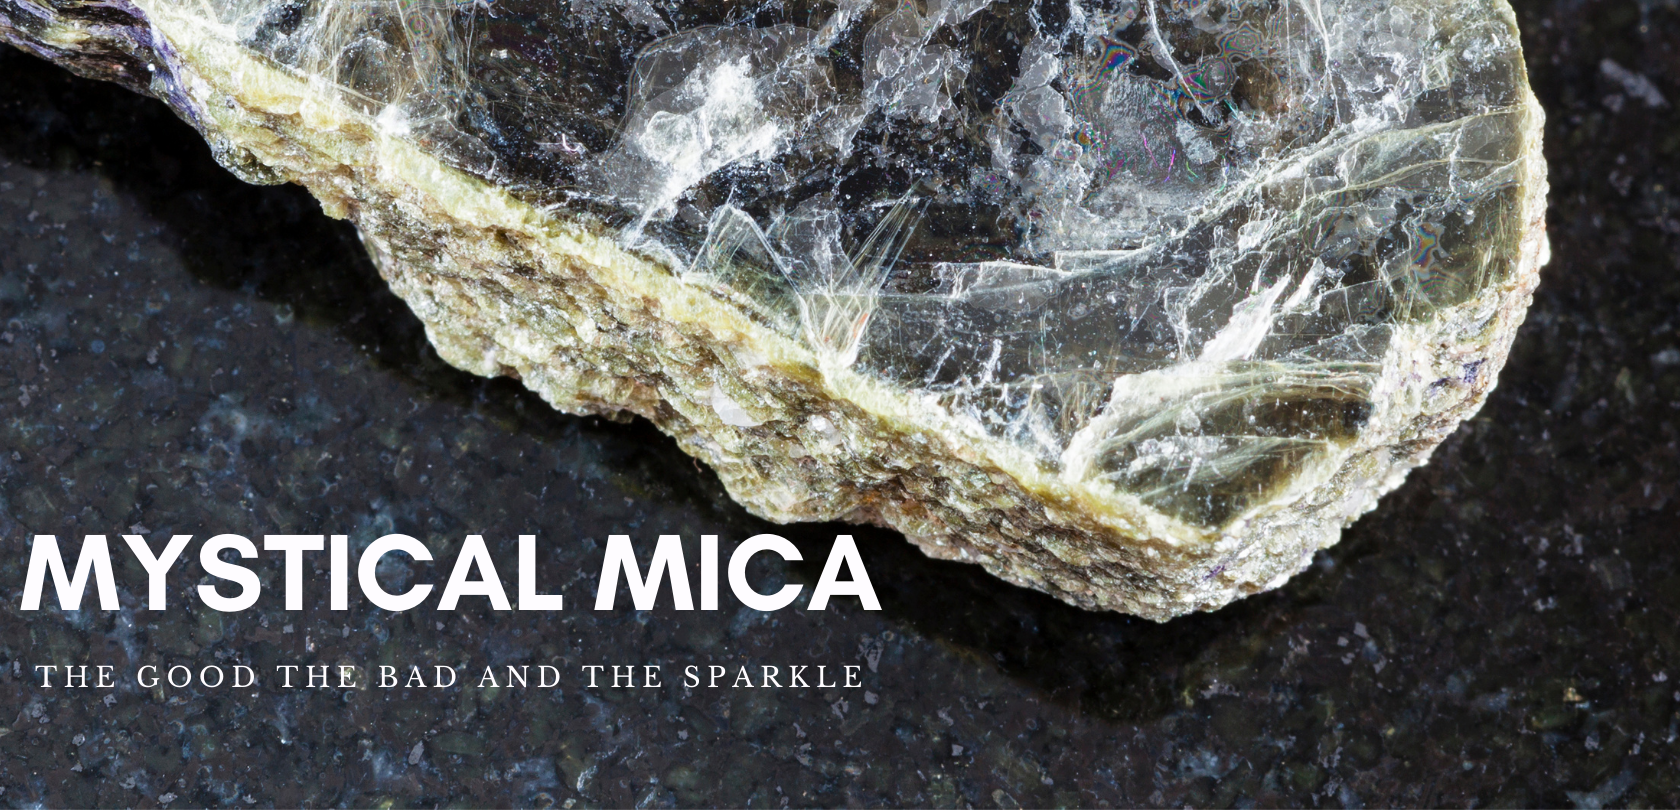 Mystical Mica, the good the bad and the sparkle.